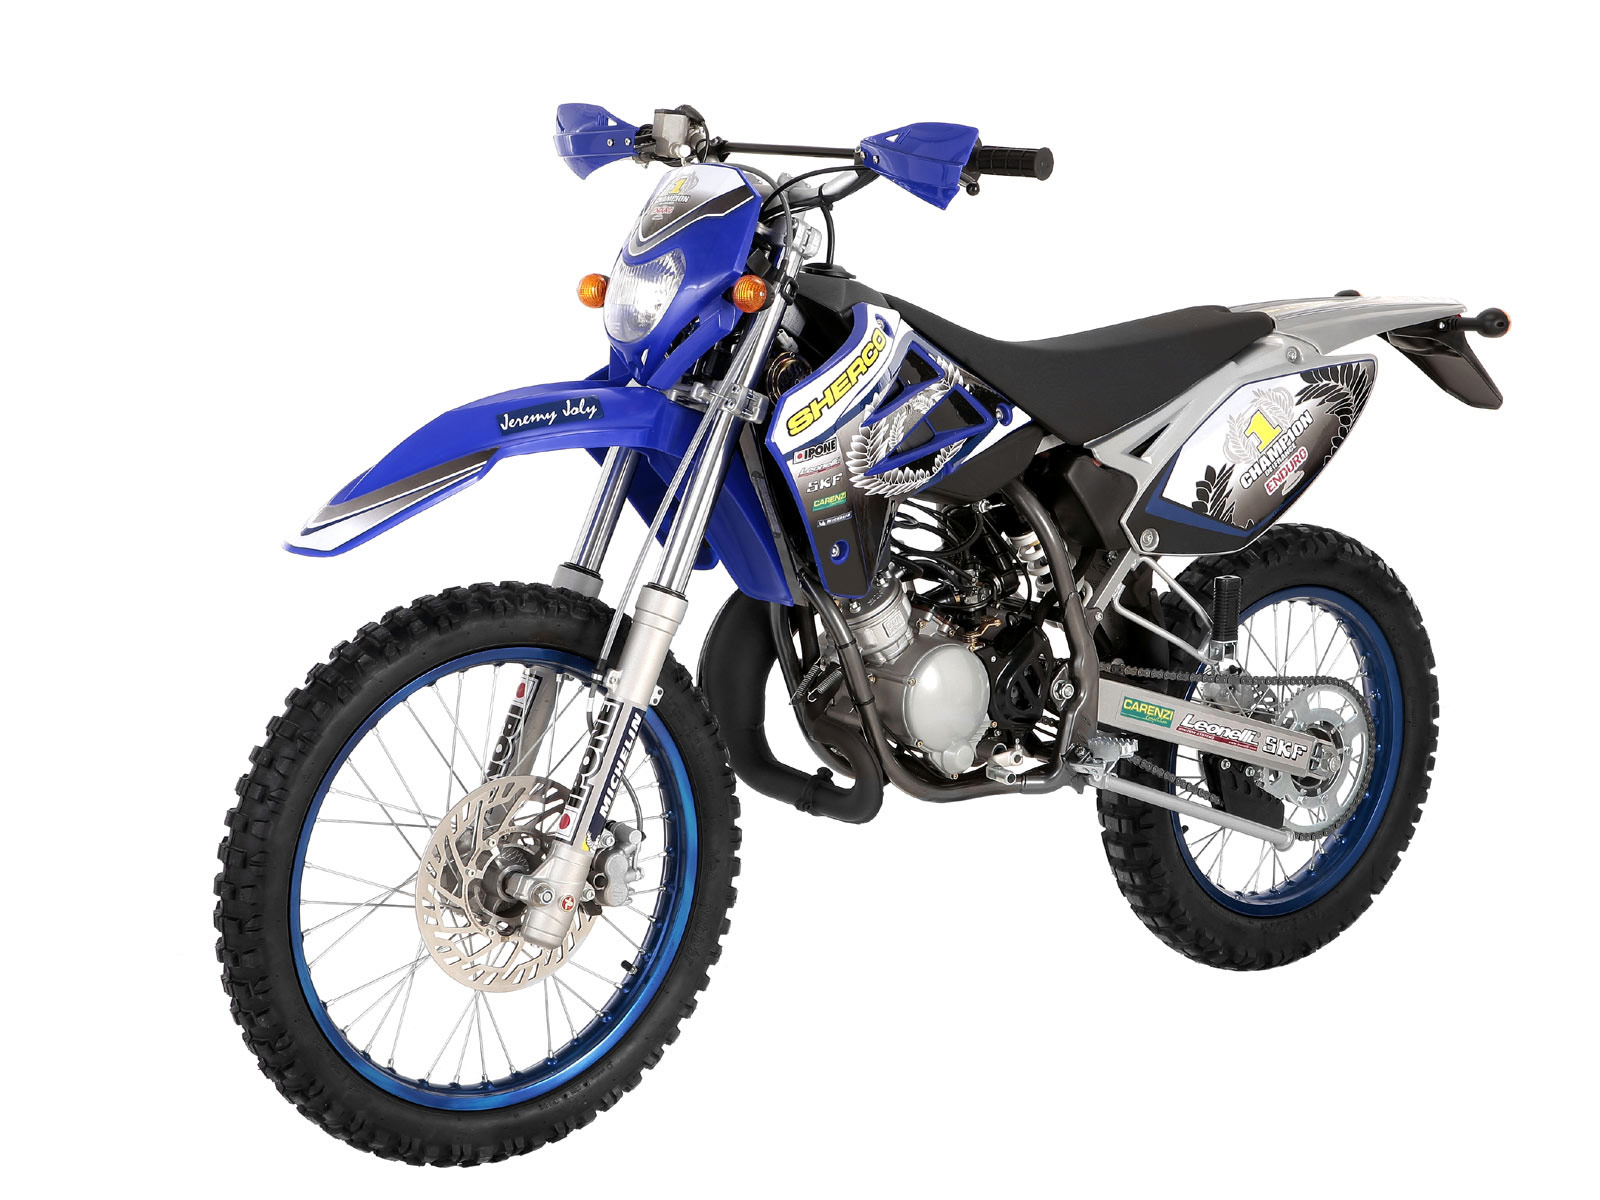 Highland 950 V2 Outback Supermoto 2005 images #97062